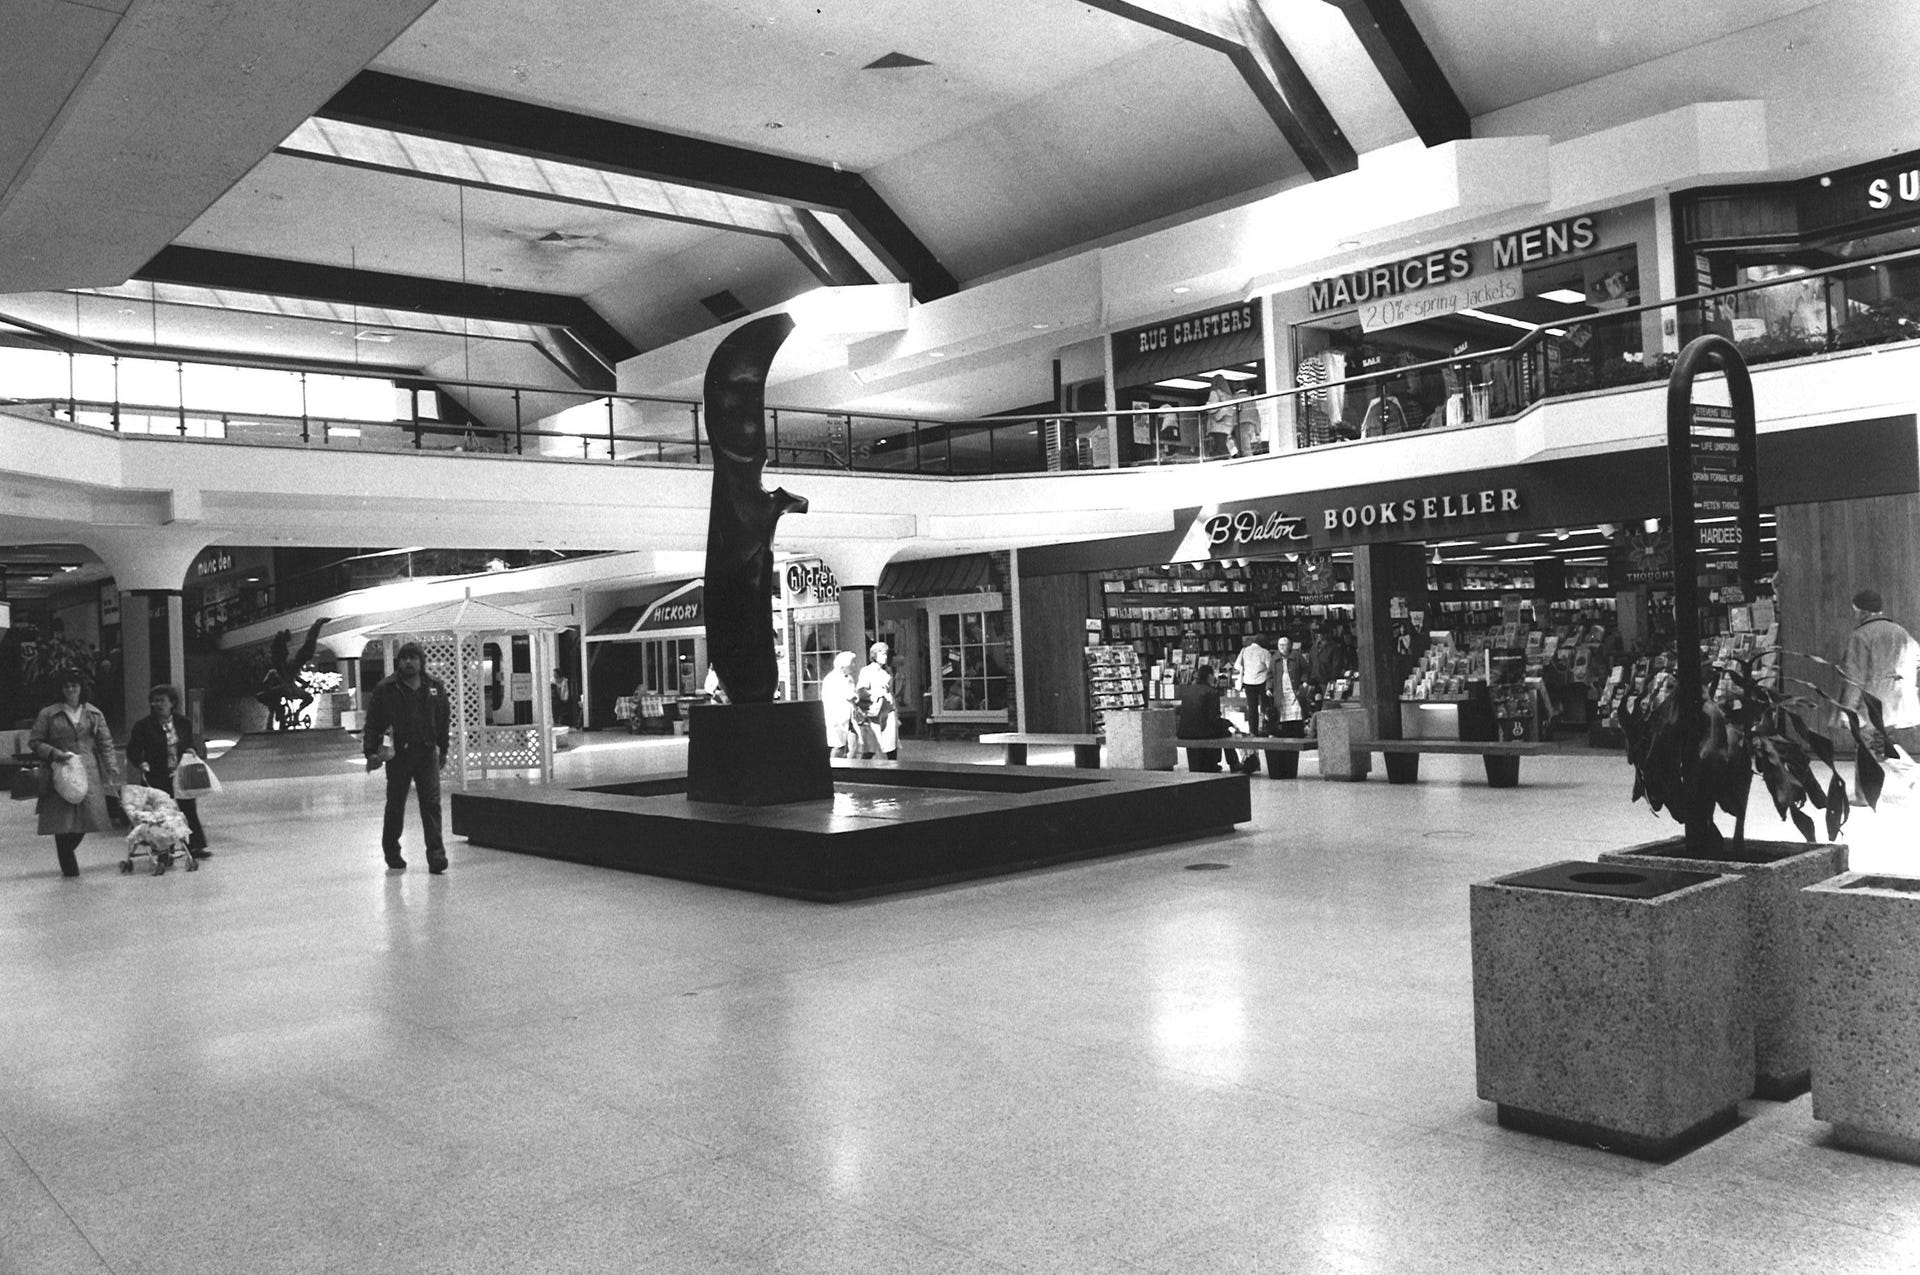 Des Moines Shopping >> Des Moines Shopping Archive Photos Of Merle Hay Mall Since 1959